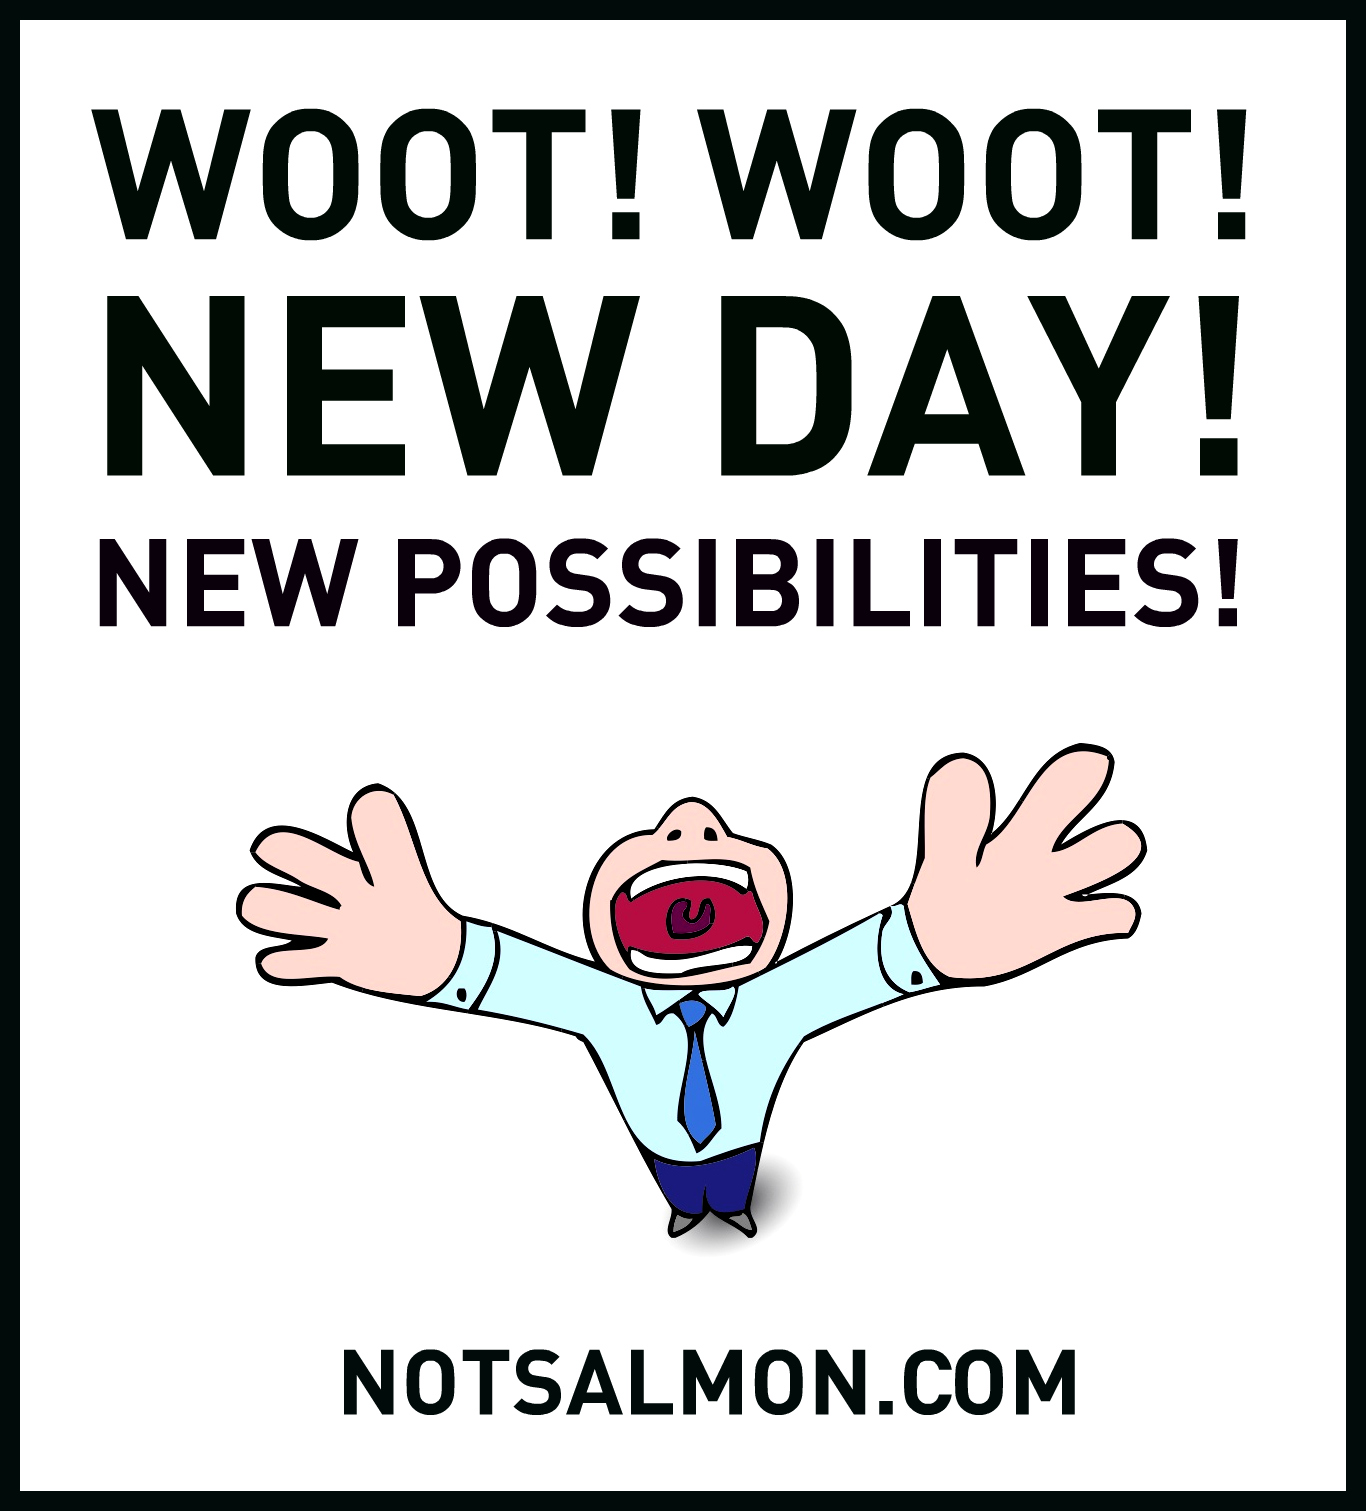 Woot woot new day new possibilities e1evation llc